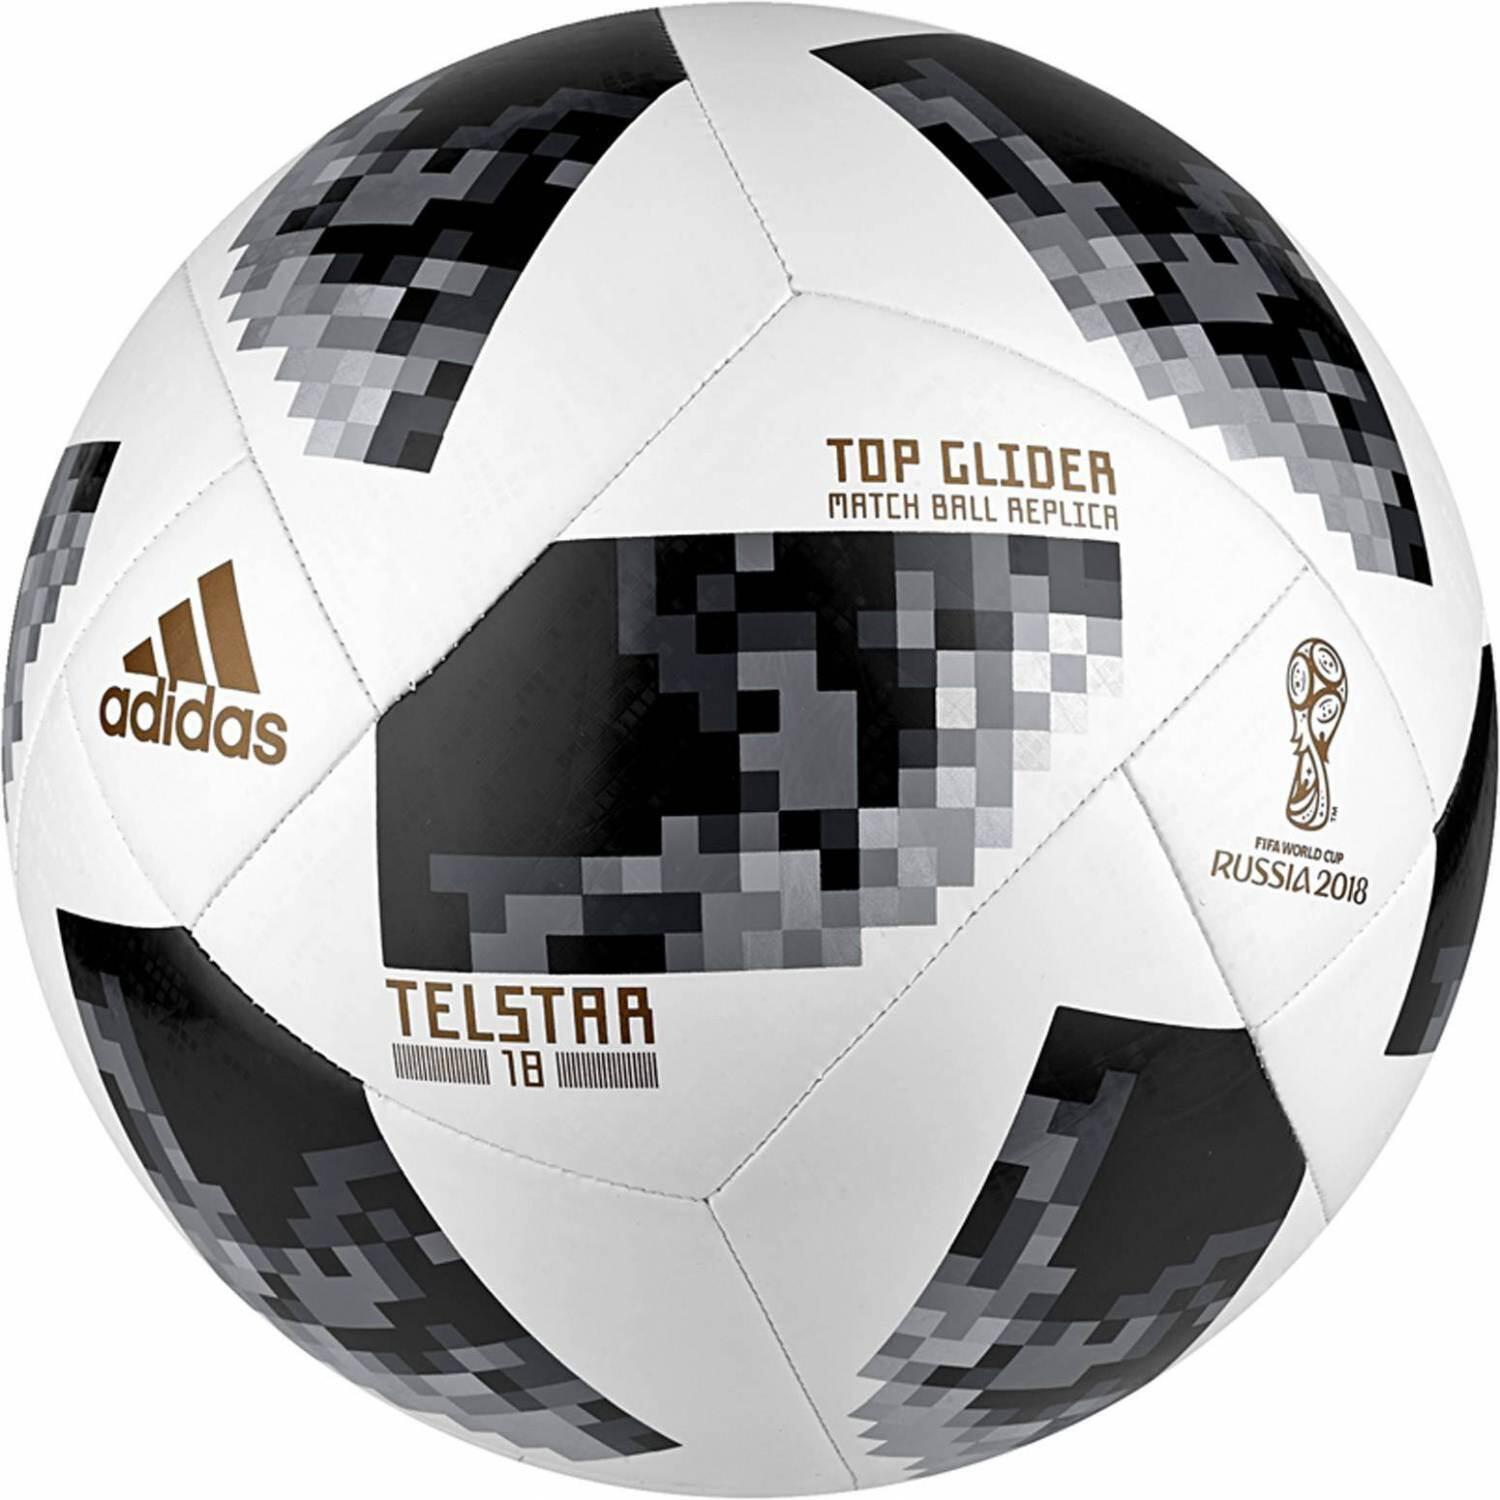 adidas-fu-szlig-ball-top-glider-wm-2018-gr-ouml-szlig-e-4-white-black-silver-metallic-